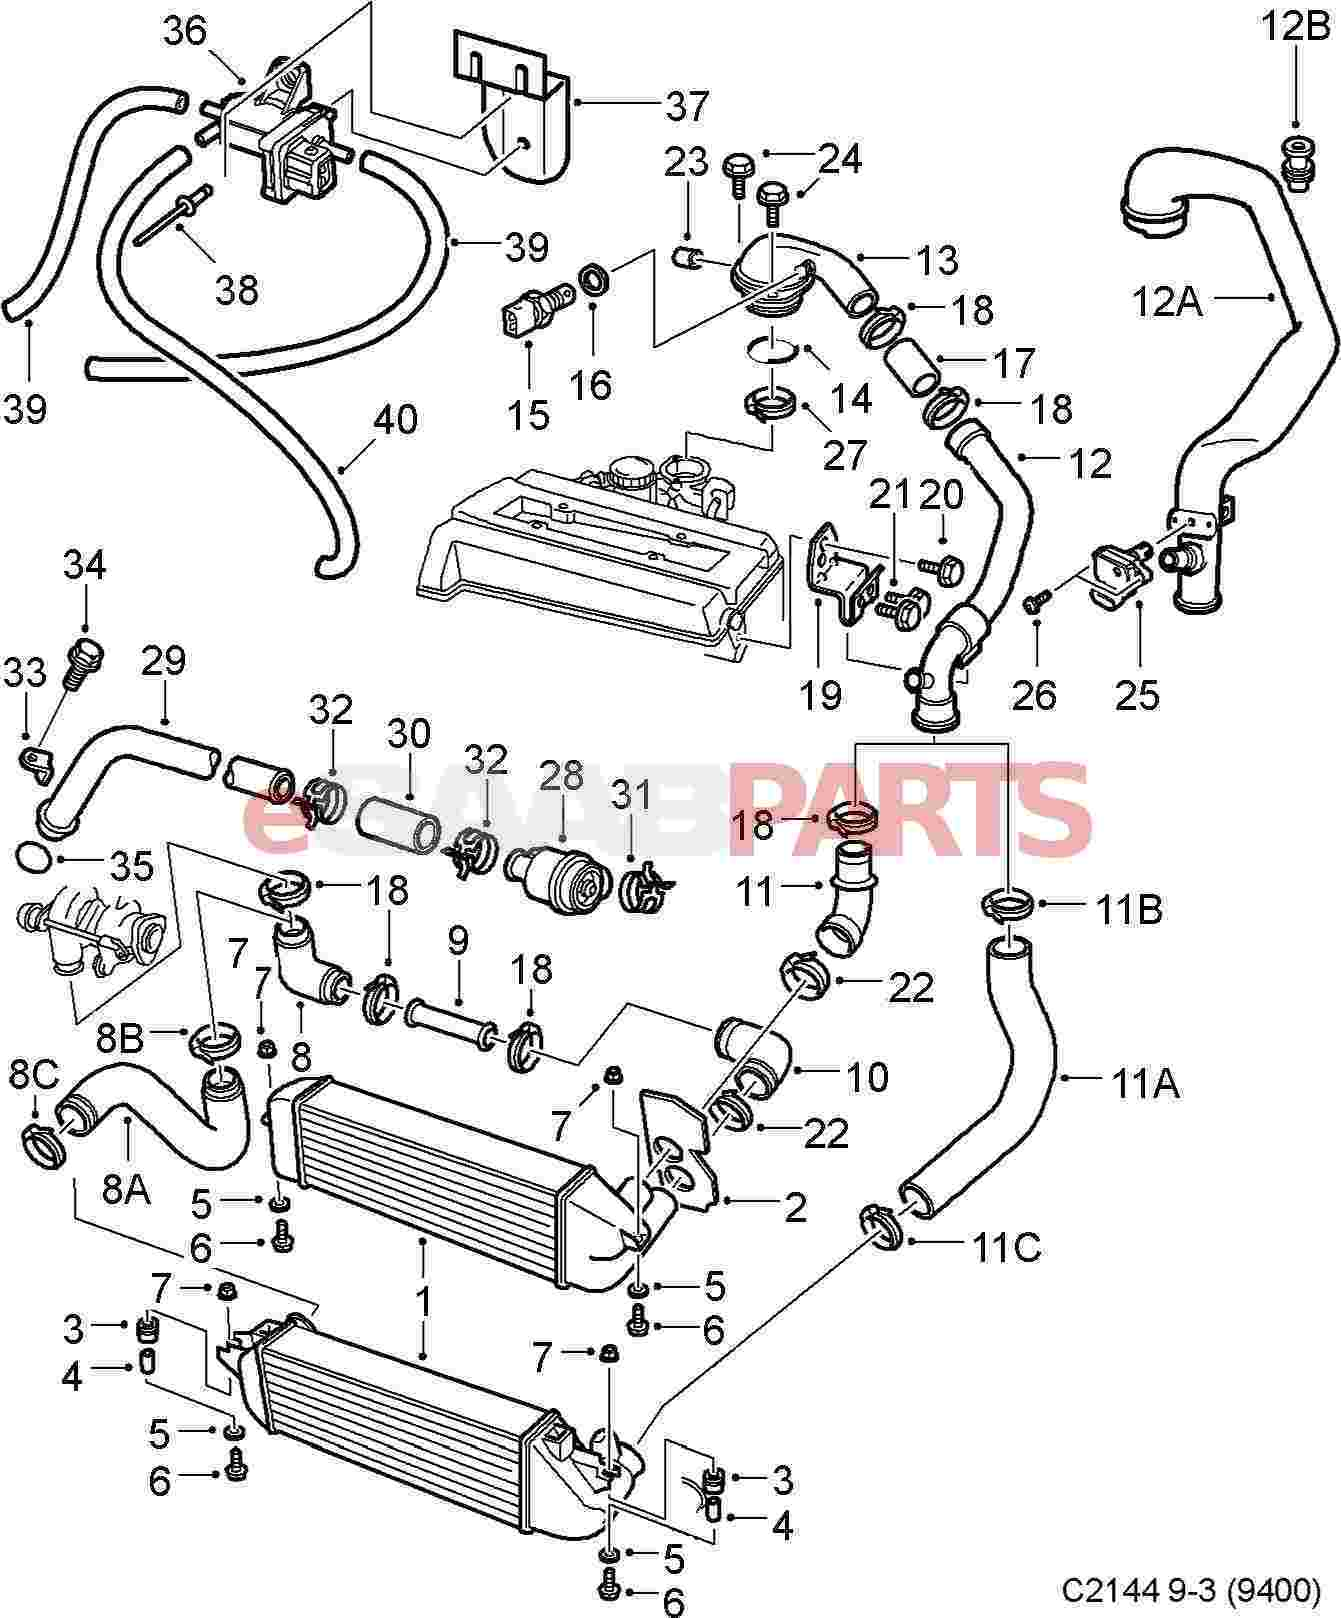 2001 saab 9 3 vacuum diagram  u2022 wiring diagram for free